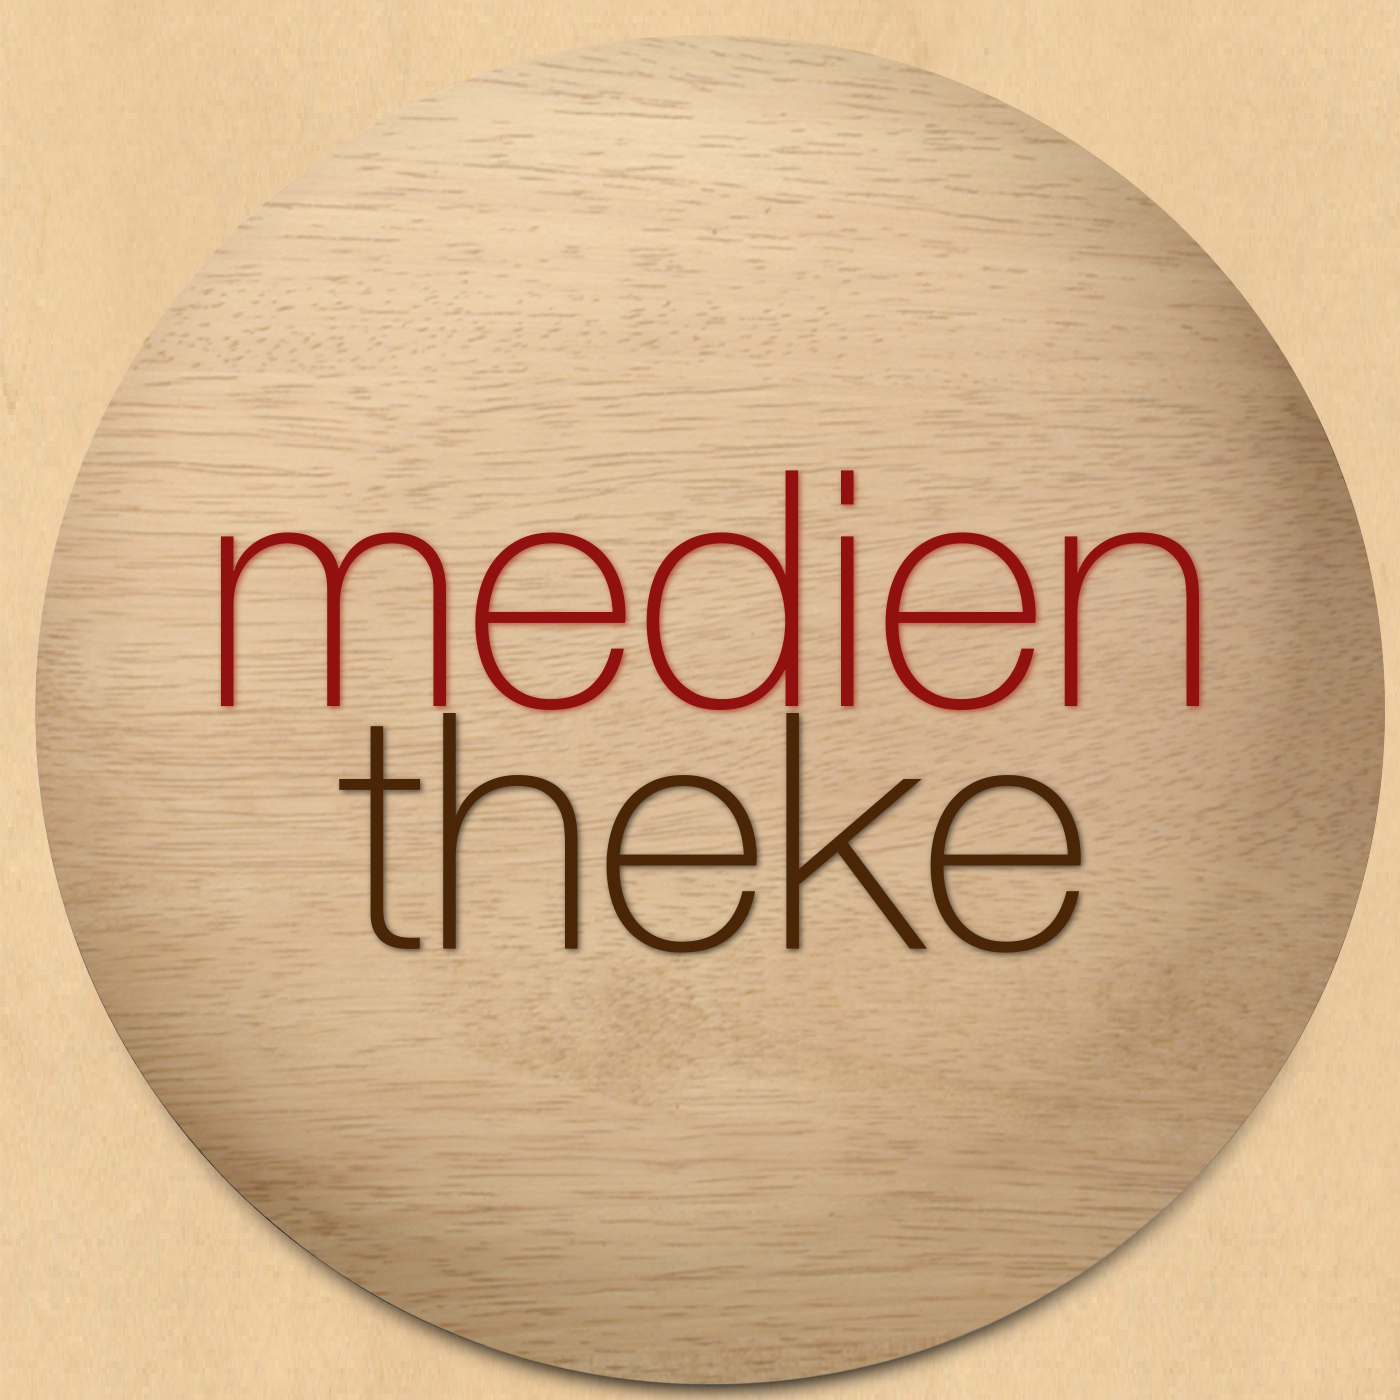 Die Medientheke - heinkedigital.com